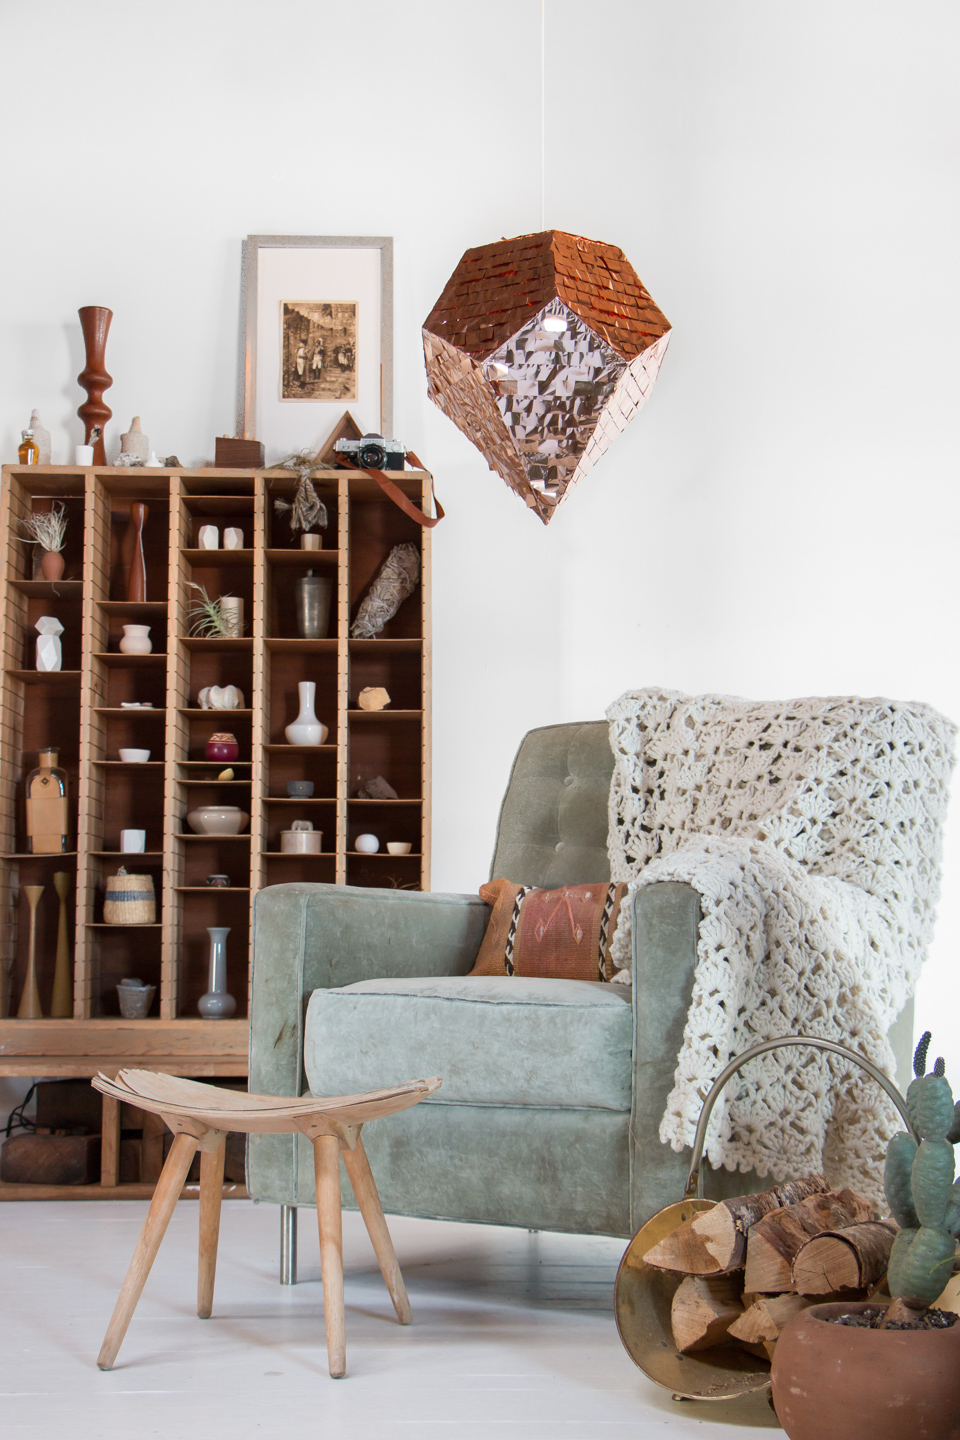 A  Bling Piñata  presides over a cozy reading nook with reminders of travels abroad.